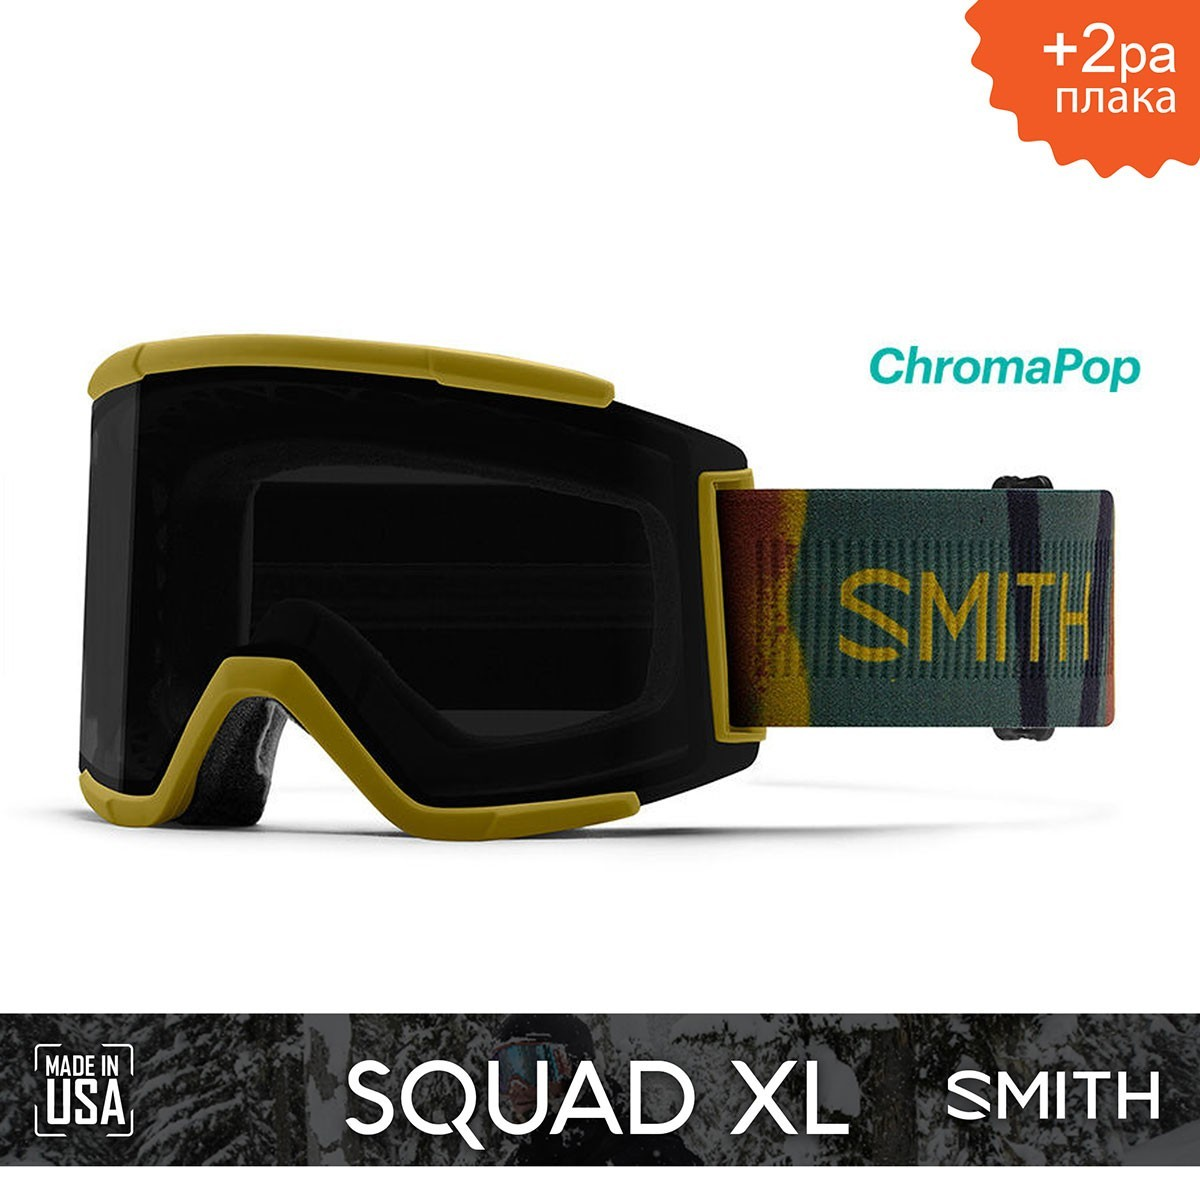 SMITH SQUAD XL Spray Camo | S3 CHROMAPOP Sun Black Mirror - Изображение - AQUAMATRIX